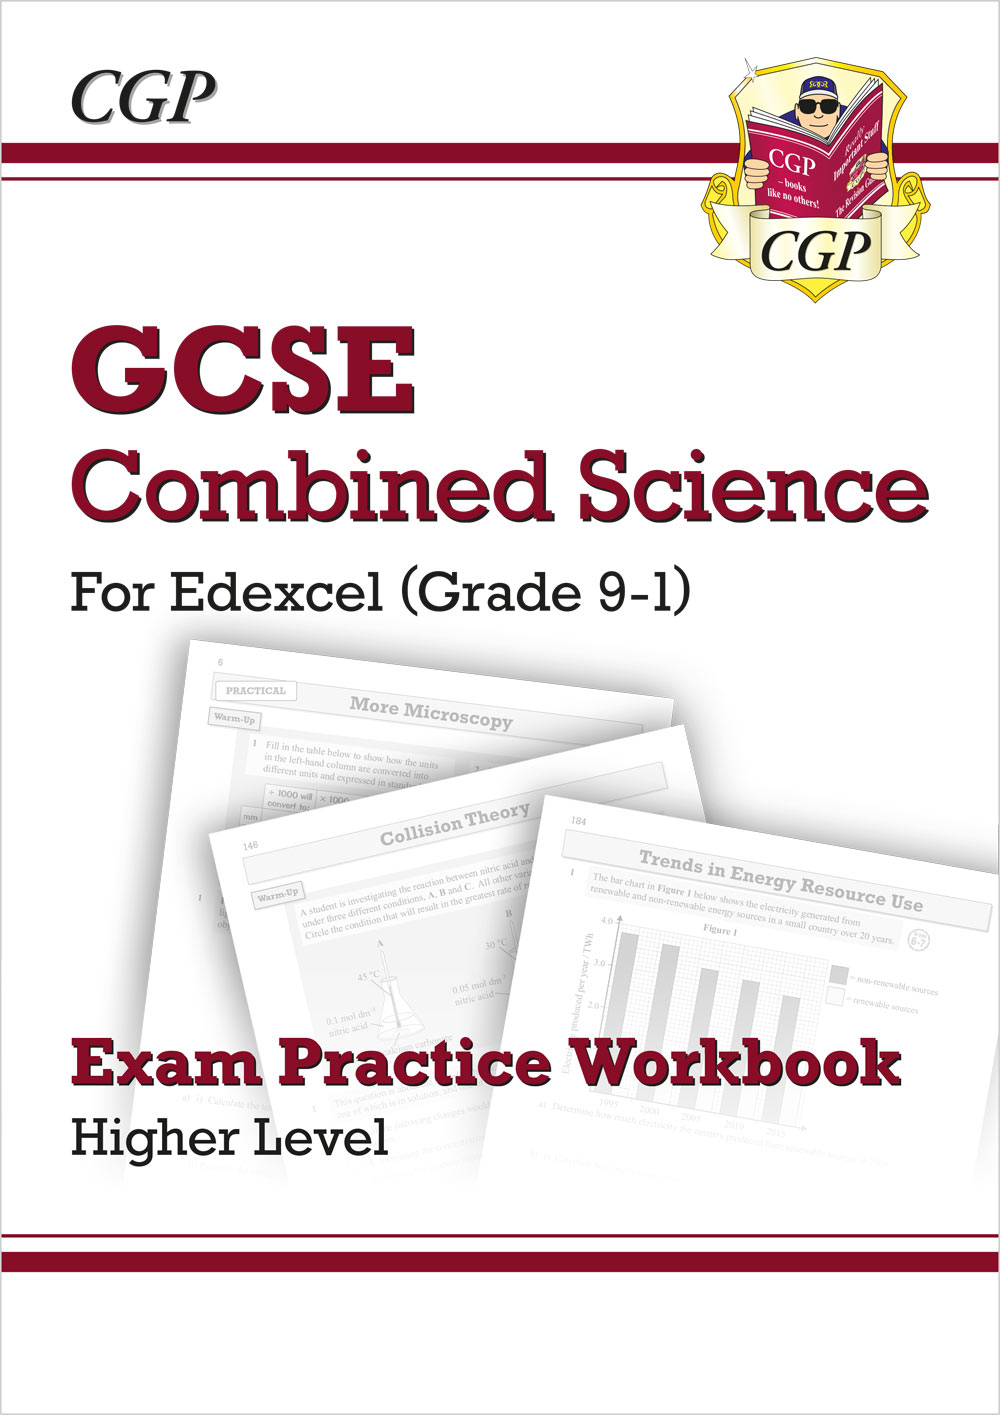 SEHQ41 - New Grade 9-1 GCSE Combined Science: Edexcel Exam Practice Workbook - Higher